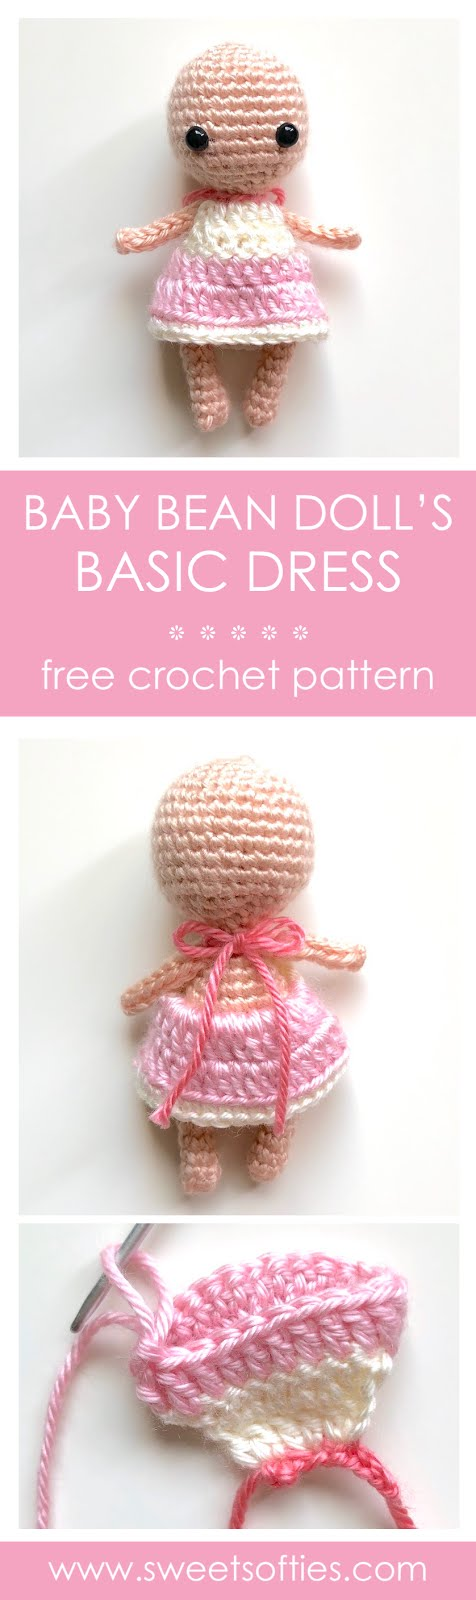 20 Free Amigurumi Patterns to Melt Your Heart | 1600x476